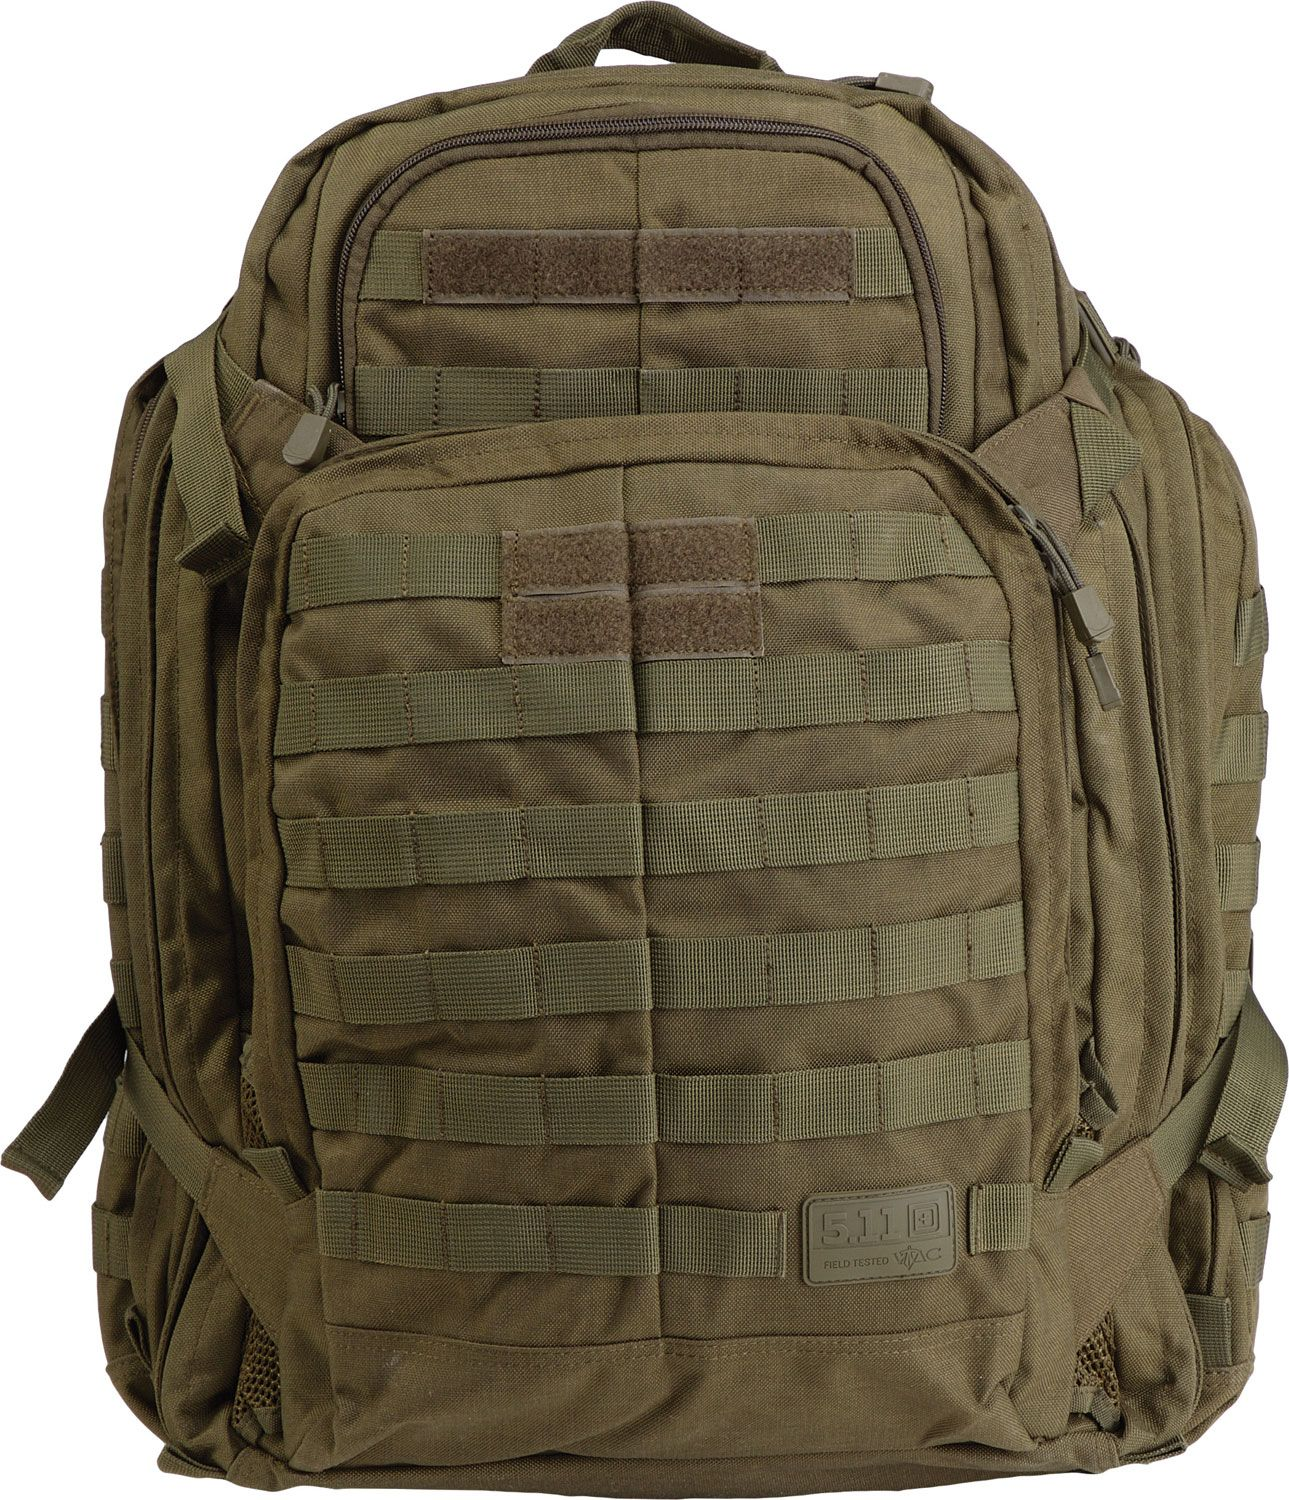 5.11 Tactical RUSH 72 Backpack, Tac OD (58602-188)